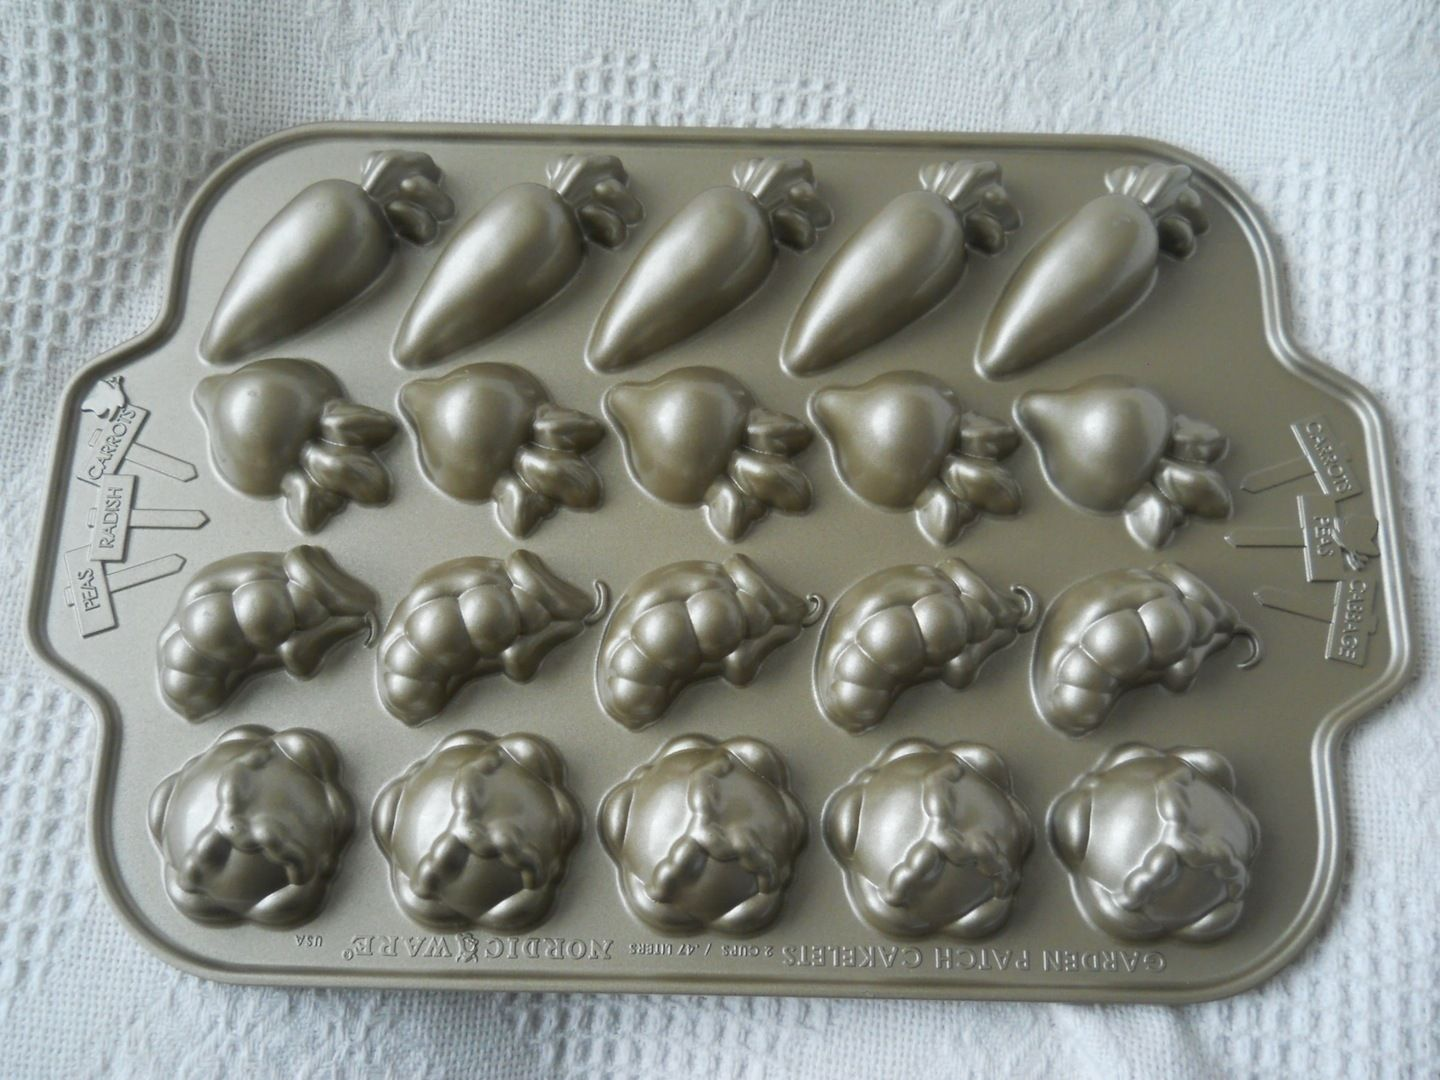 New Williams Sonoma Nordic Ware Garden Patch Cakelets Cake Mold ...